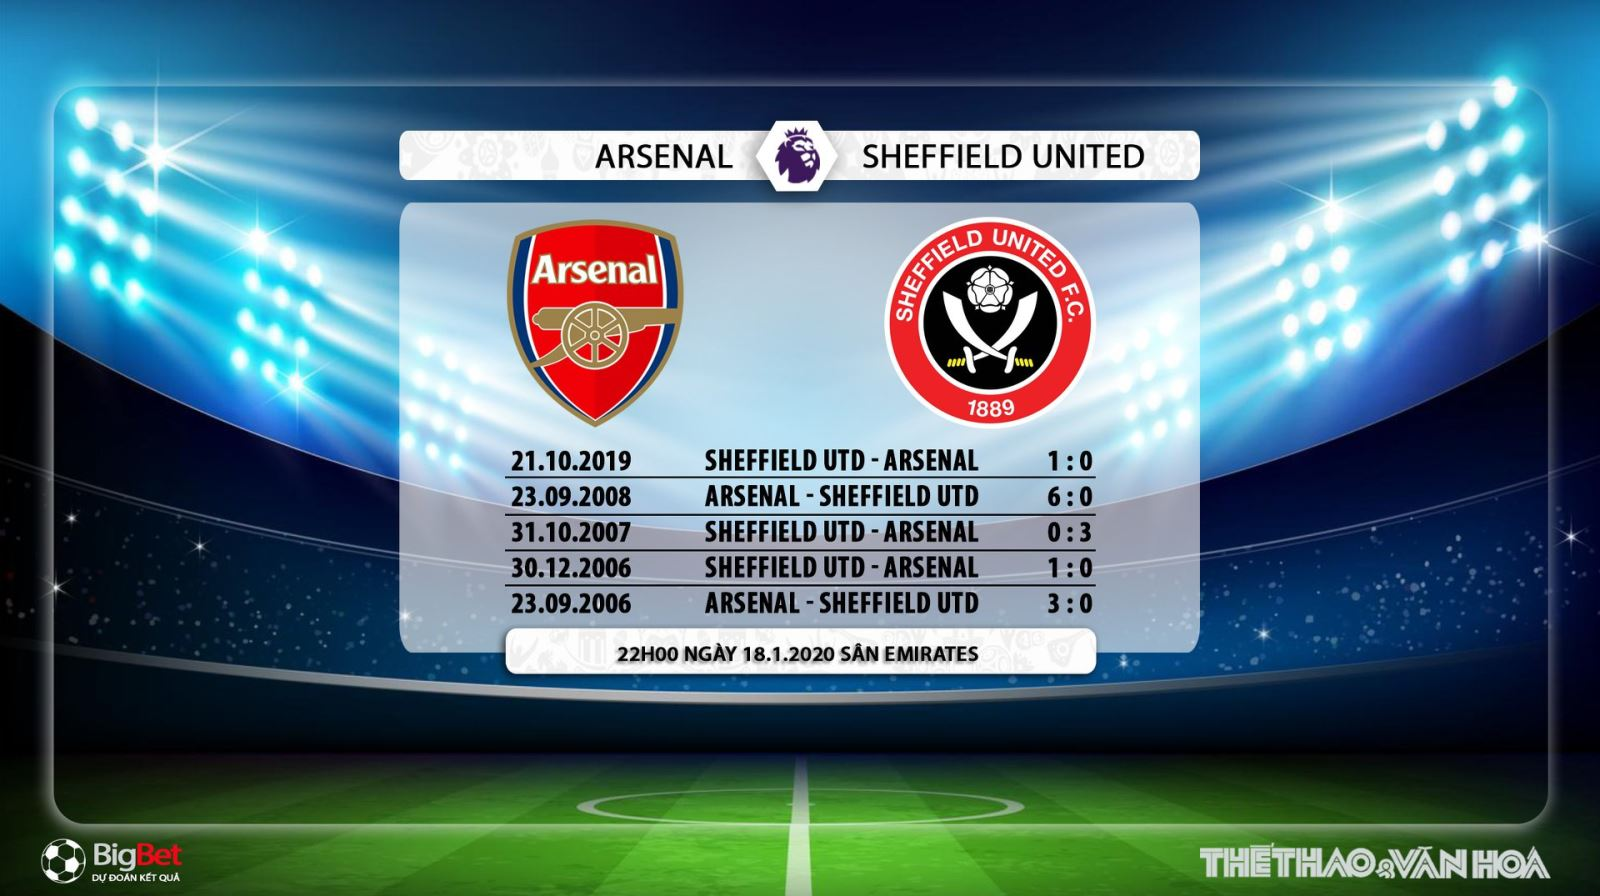 Soi kèo Arsenal vs Sheffield, Arsenal vs Sheffield, trực tiếp Arsenal vs Sheffield, dự đoán Arsenal vs Sheffield, Arsenal, Sheffield, K+, K+PM